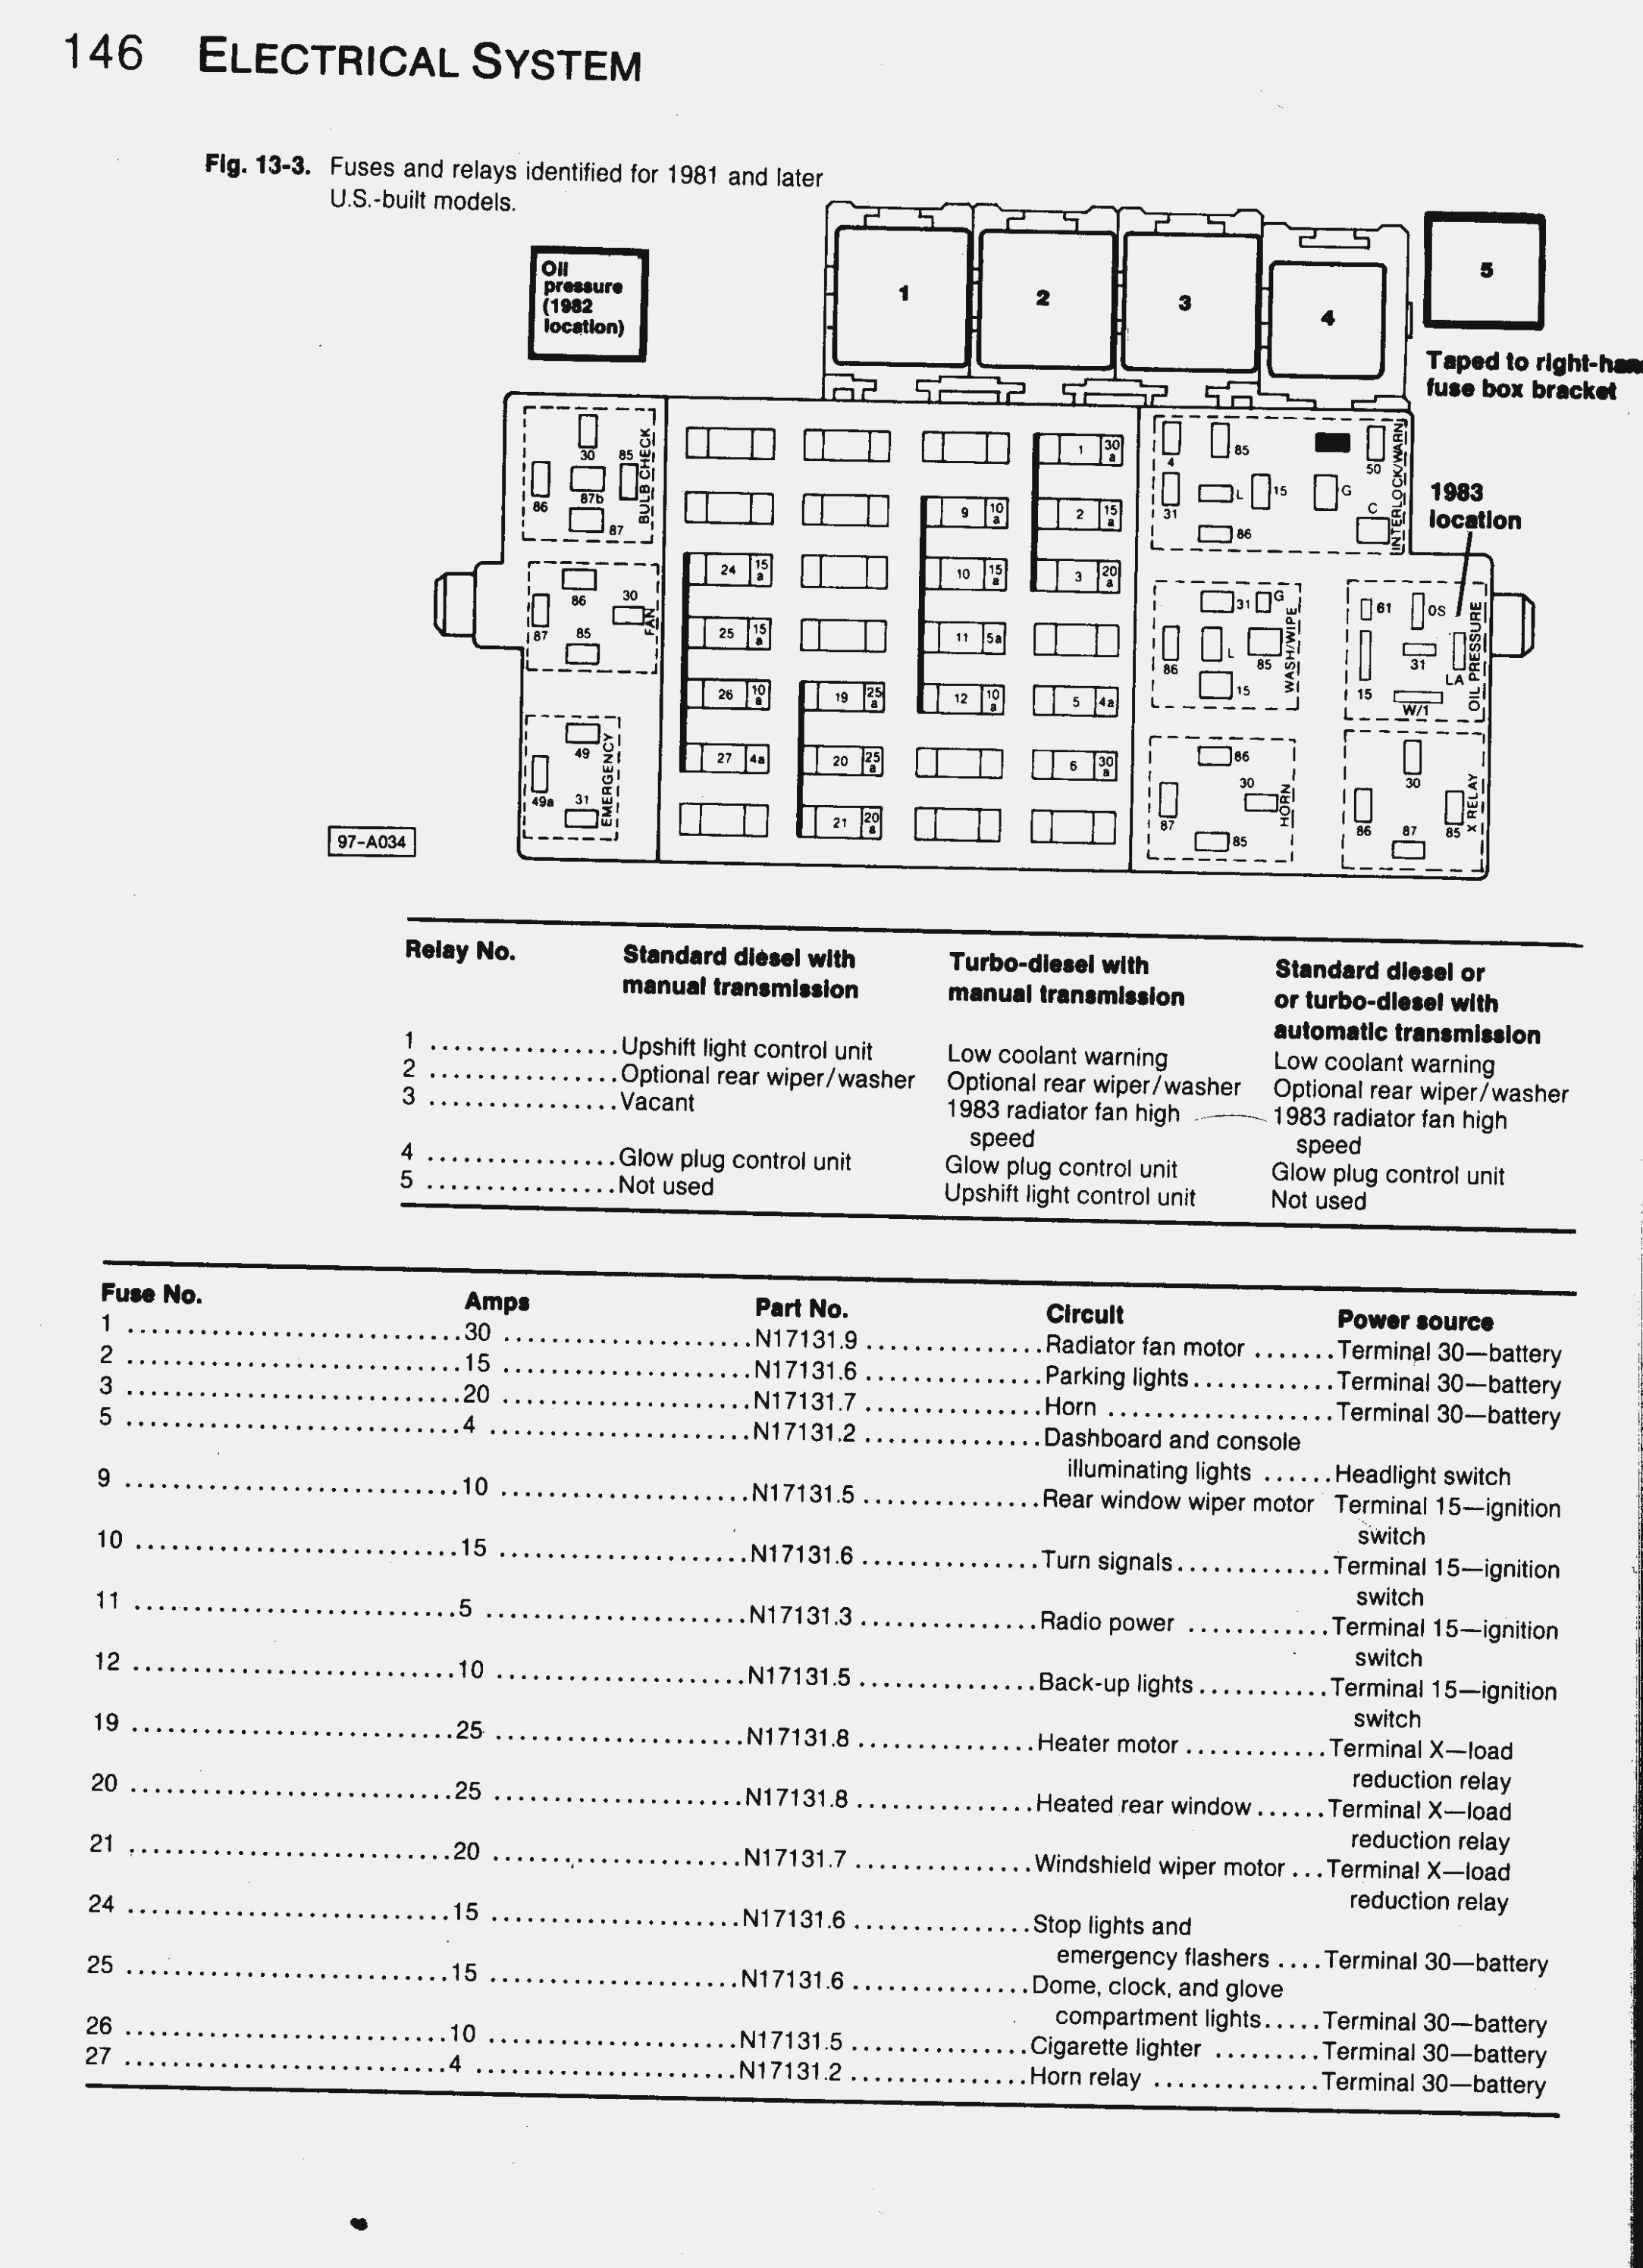 2001 Volkswagen Passat Engine Diagram Vw Passat Fuse Diagram Of 2001 Volkswagen Passat Engine Diagram